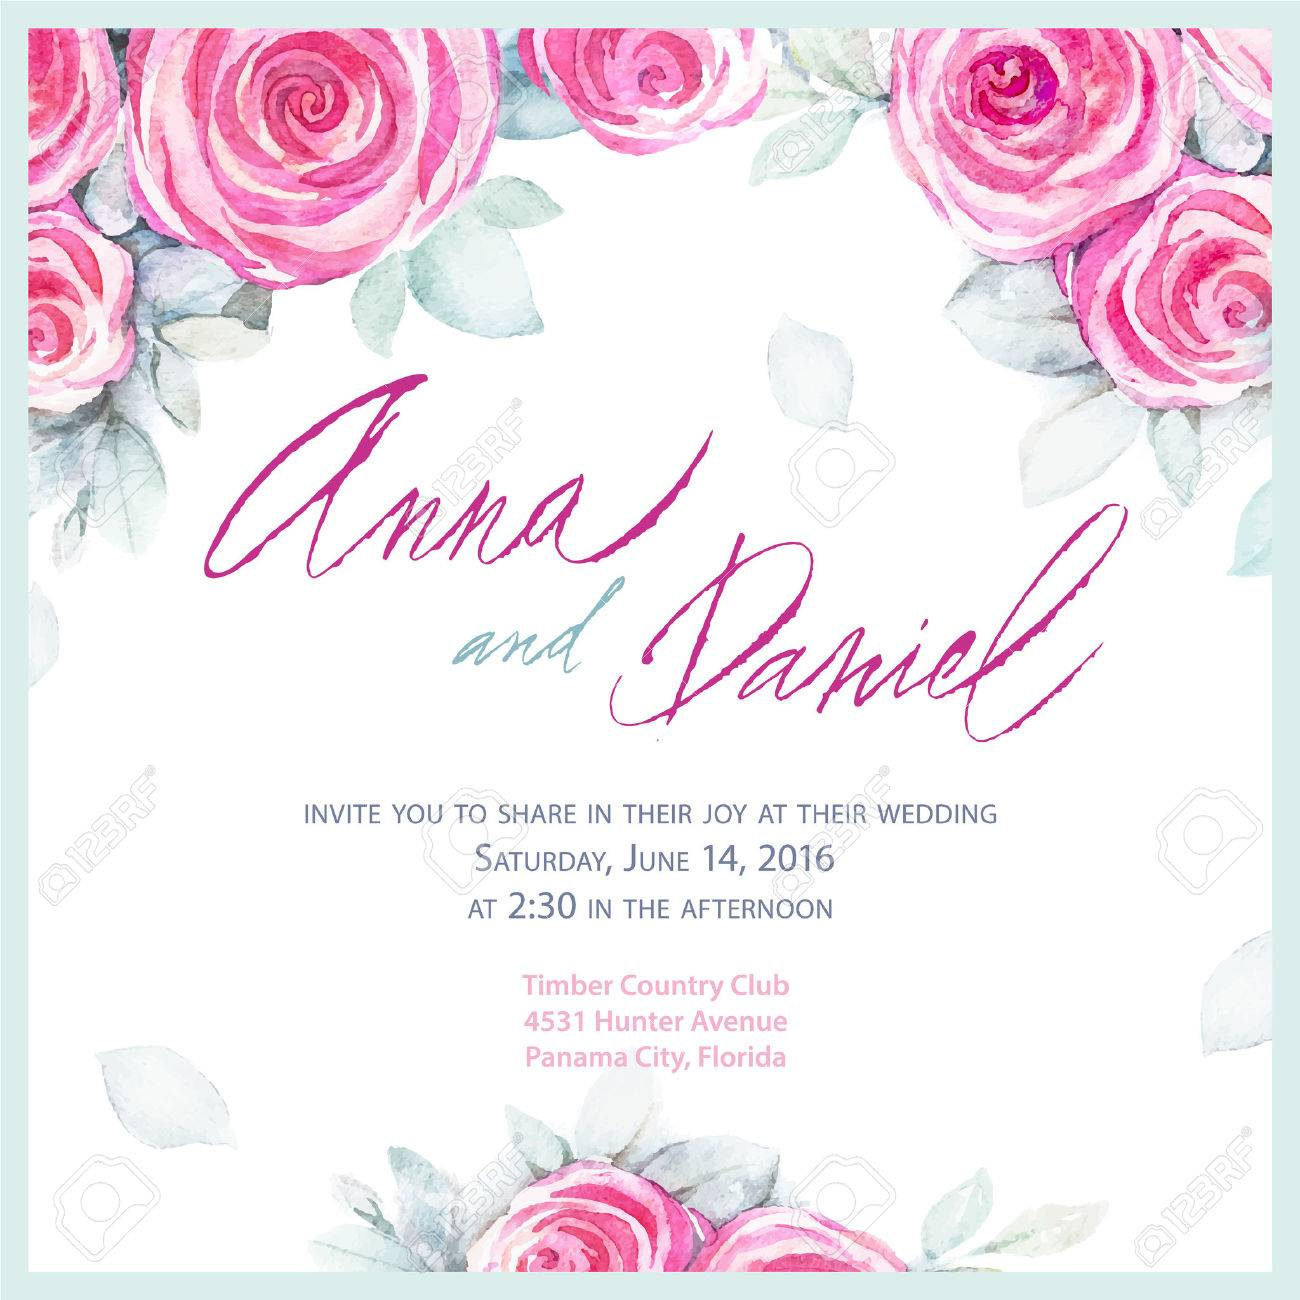 Invitation wedding design romantic greeting cards vector romantic greeting cards vector watercolor backround with roses stock vector m4hsunfo Gallery